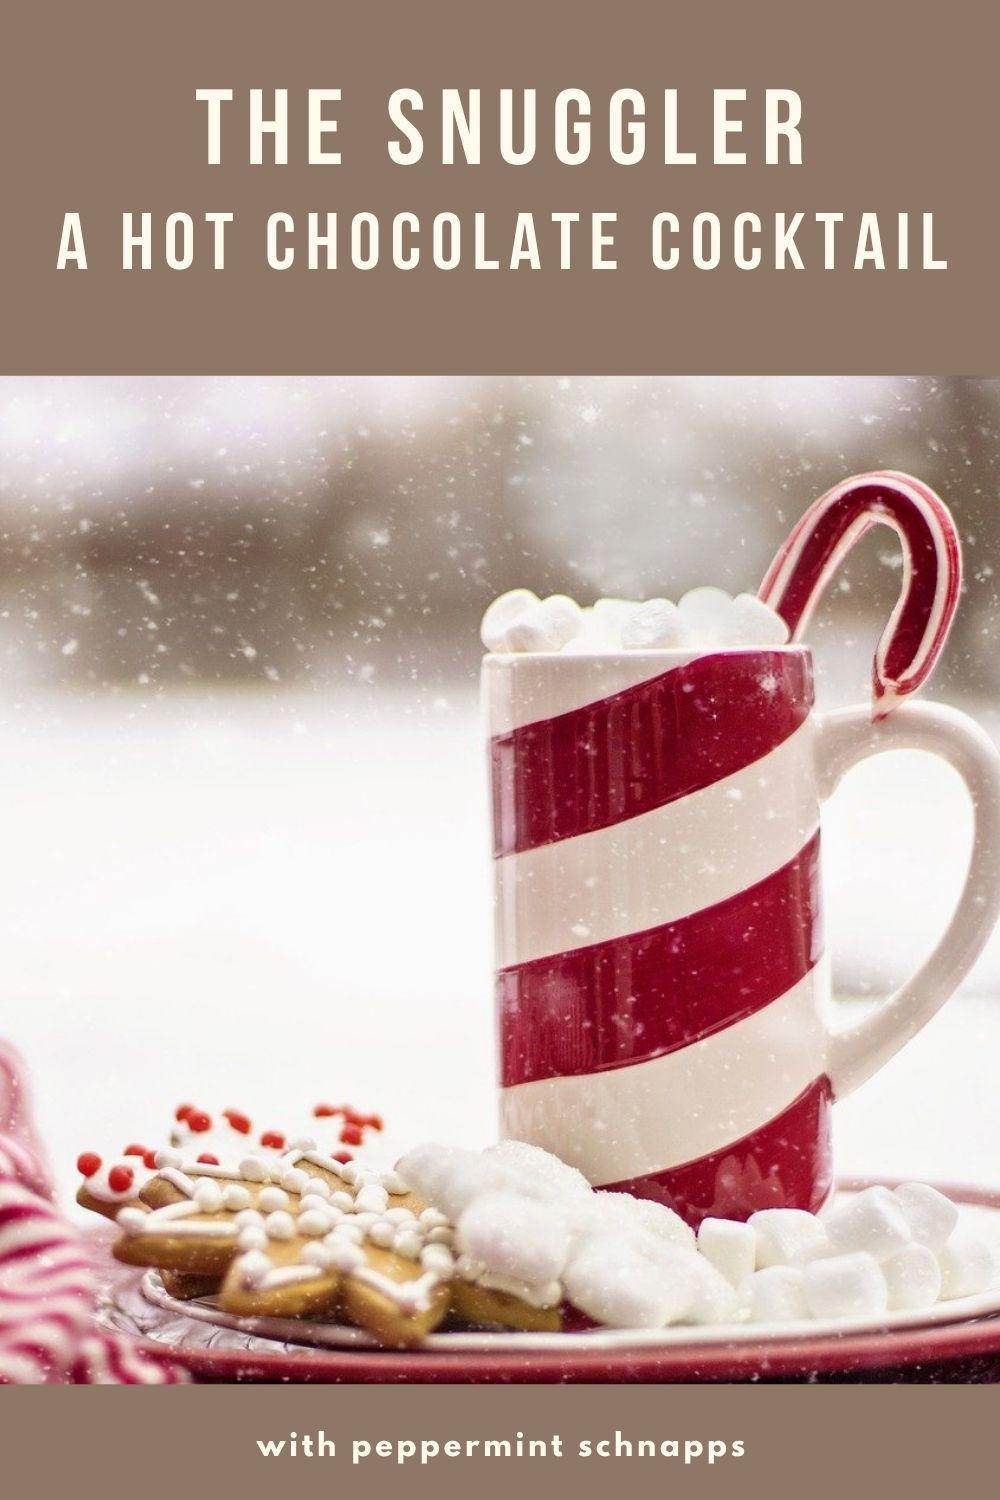 The Snuggler hot chocolate cocktail graphic